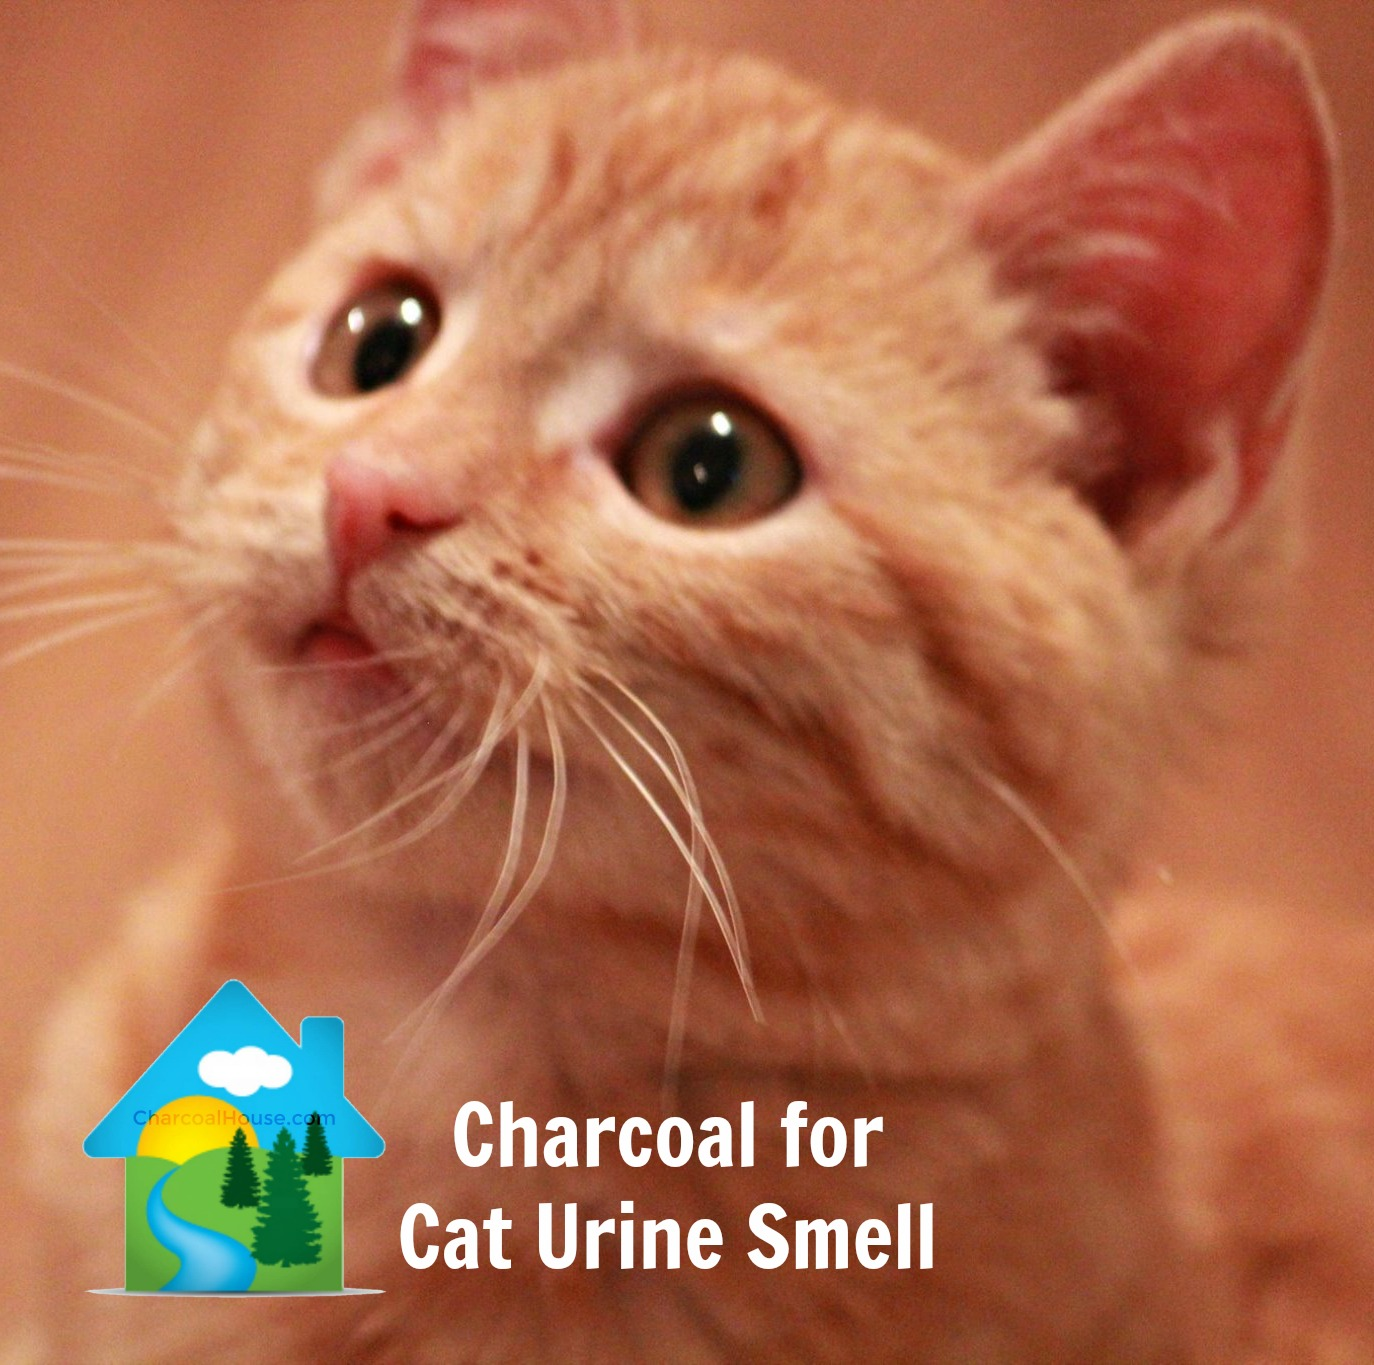 charcoal for cat urine smell - Charcoal for Cat Urine Smell